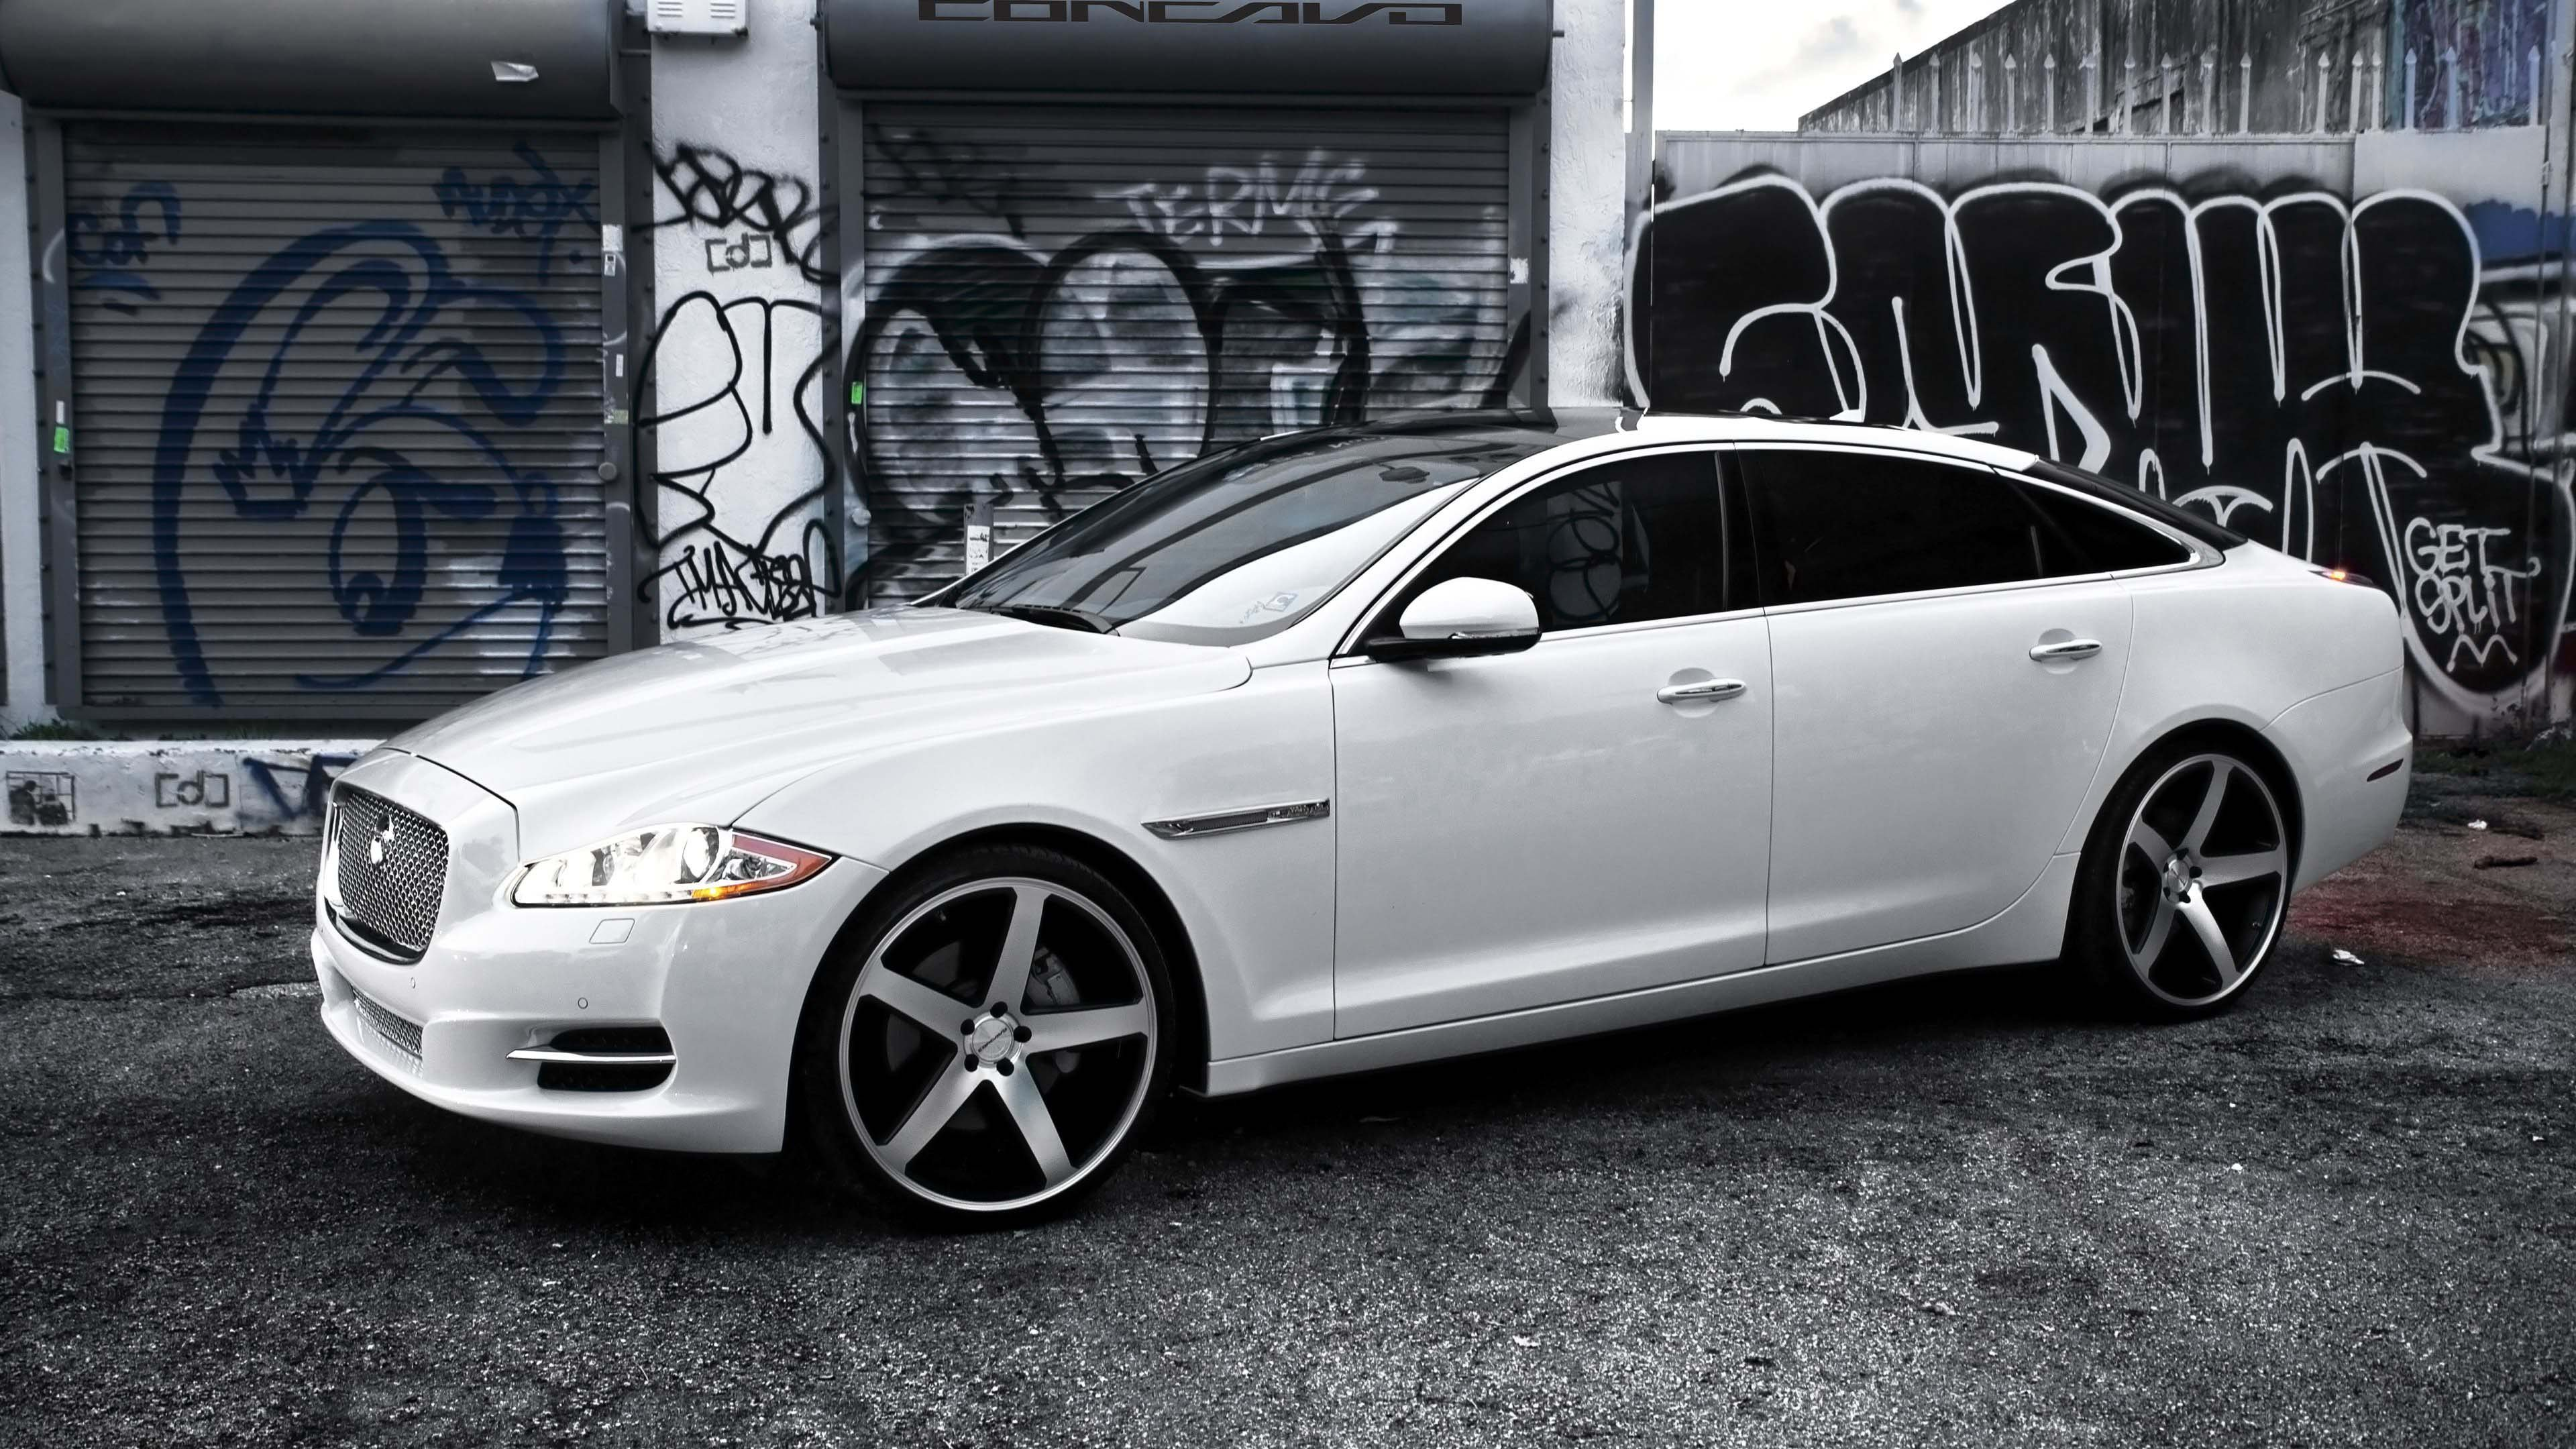 New Jaguar Car Wallpaper Hd Collection On This Month